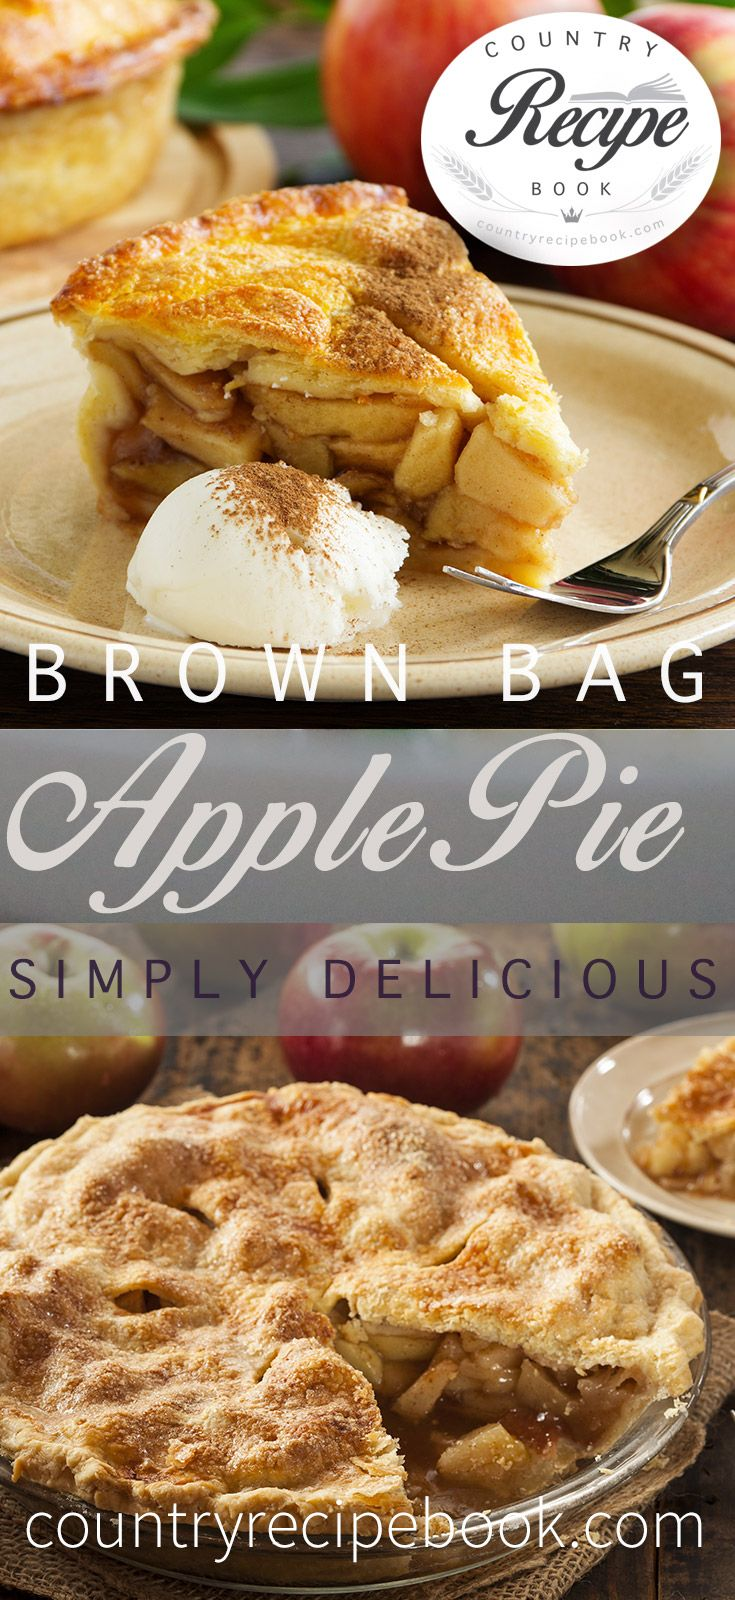 Brown Bag Apple Pie recipe...make a tasty country Apple Pie using this simple Brown Bag secret.